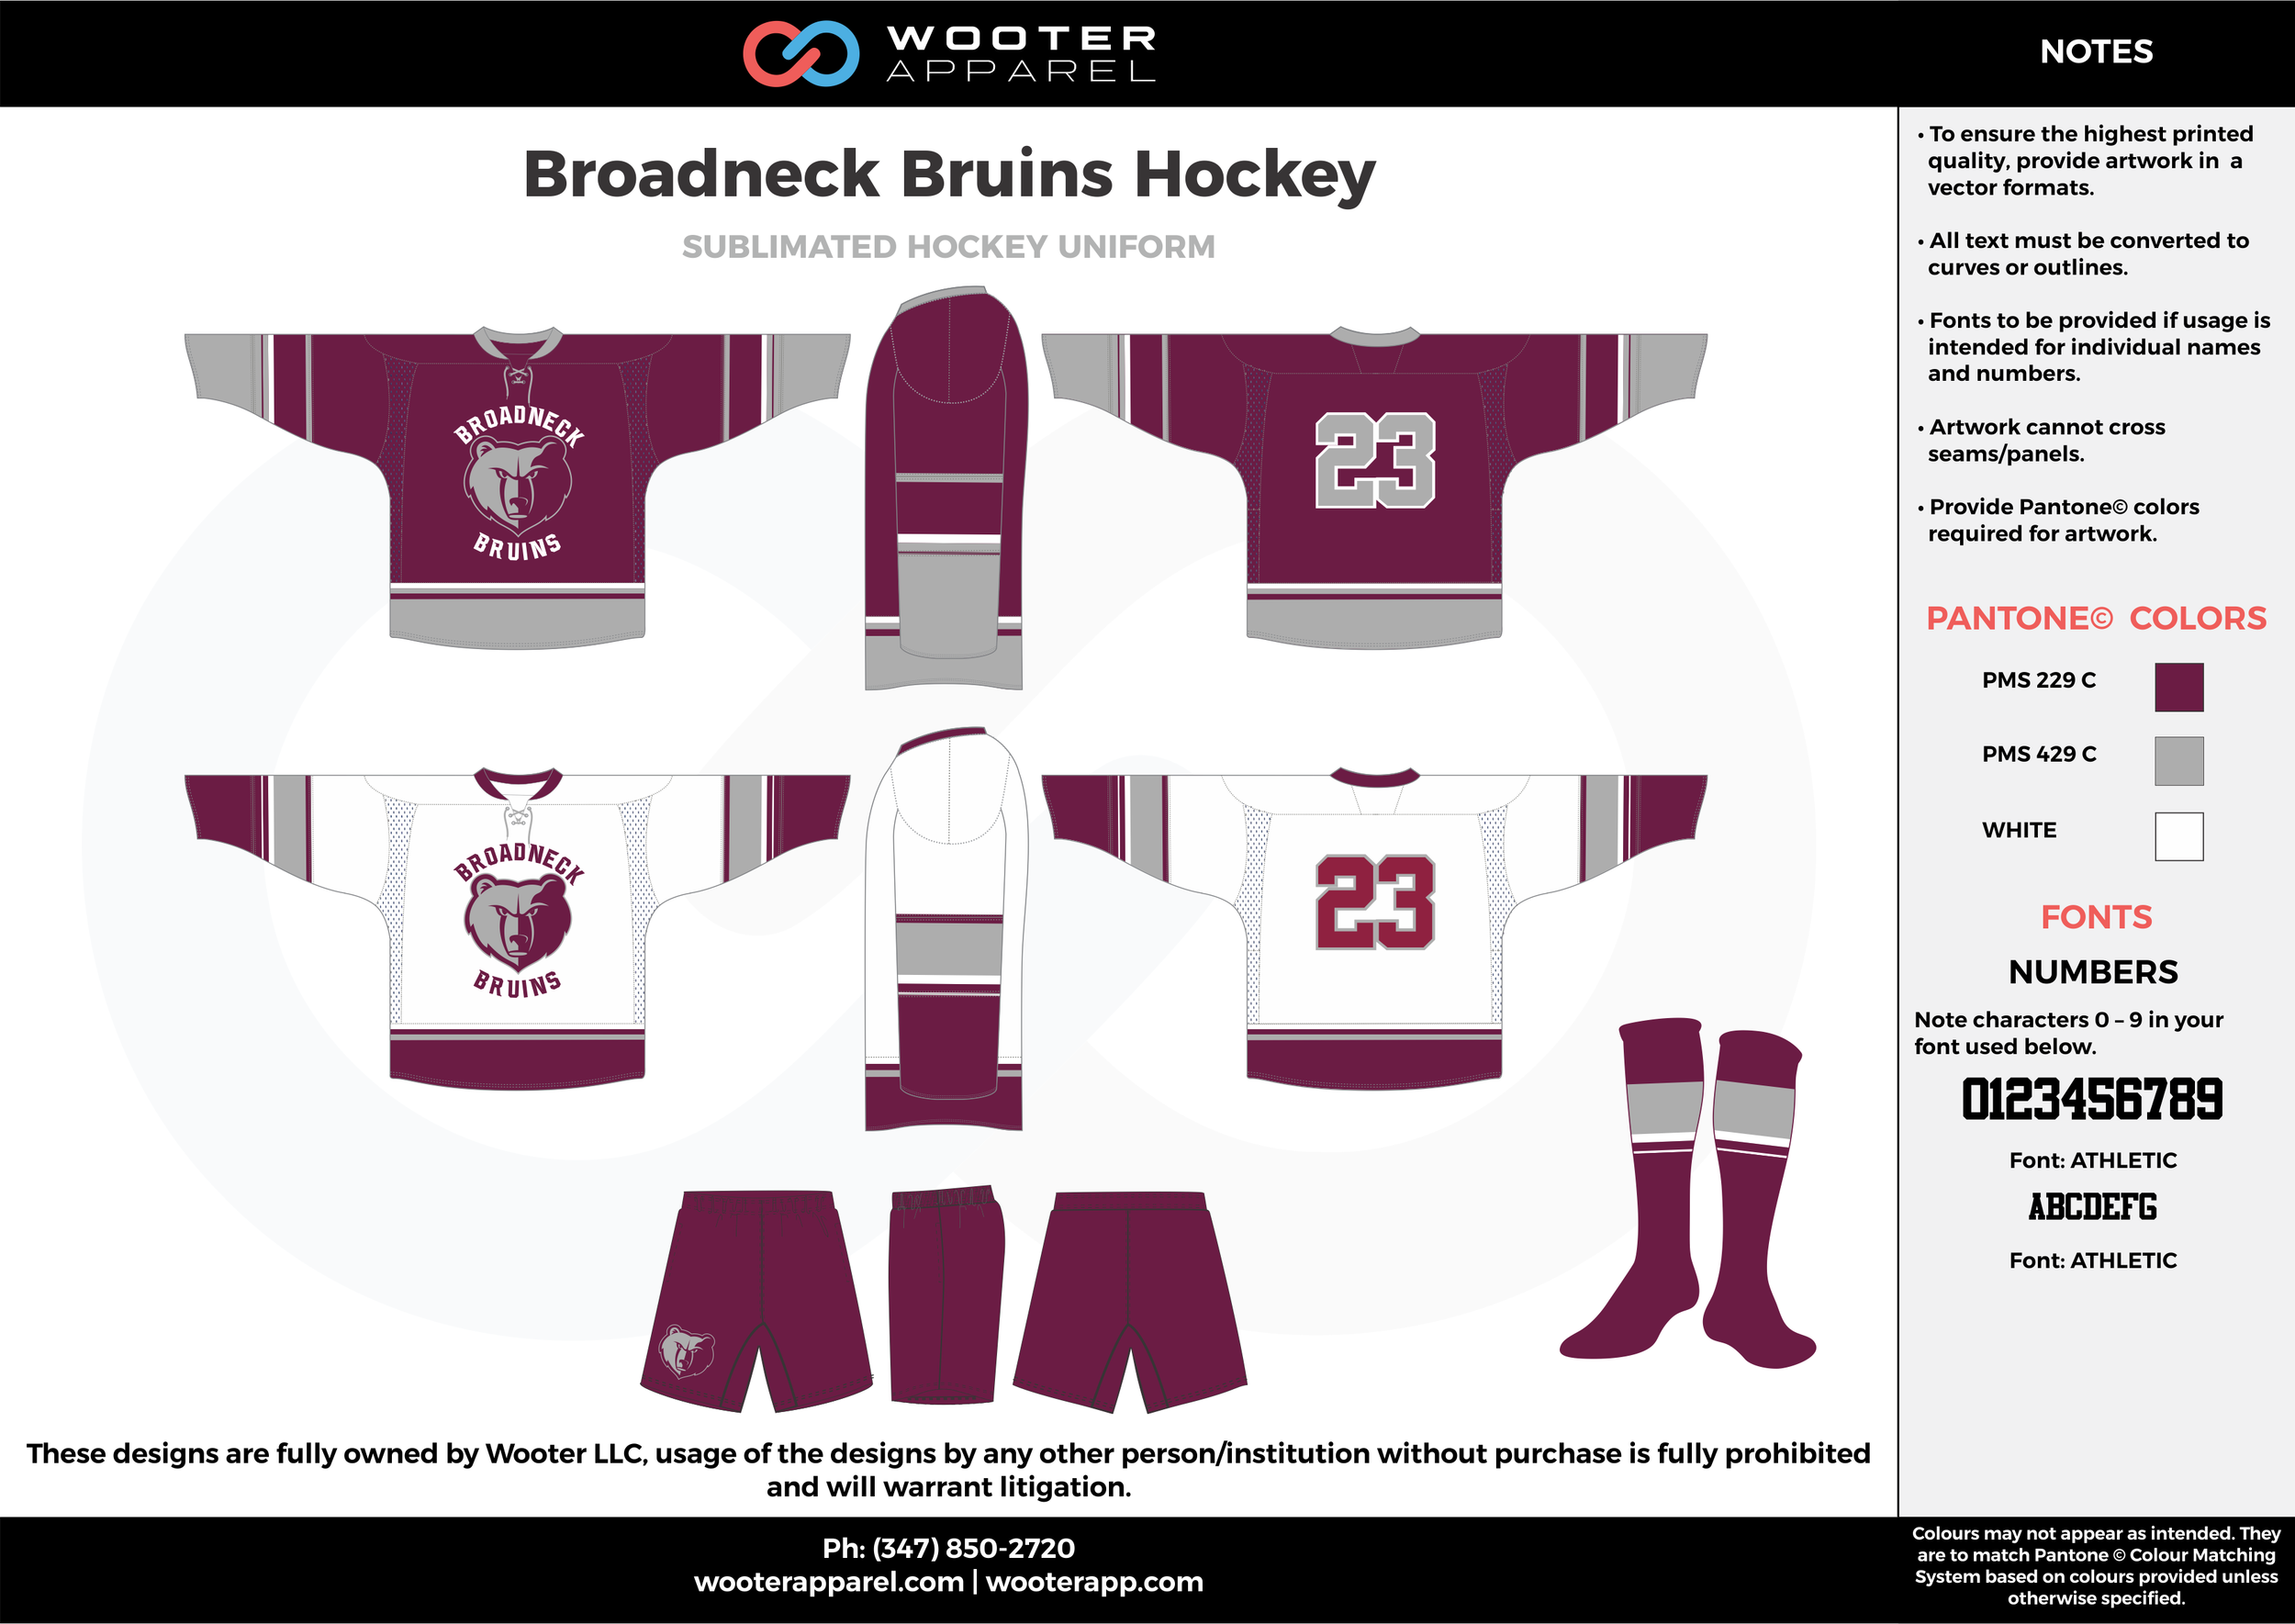 Broadneck Bruins Hockey purple gray white hockey uniforms jerseys socks